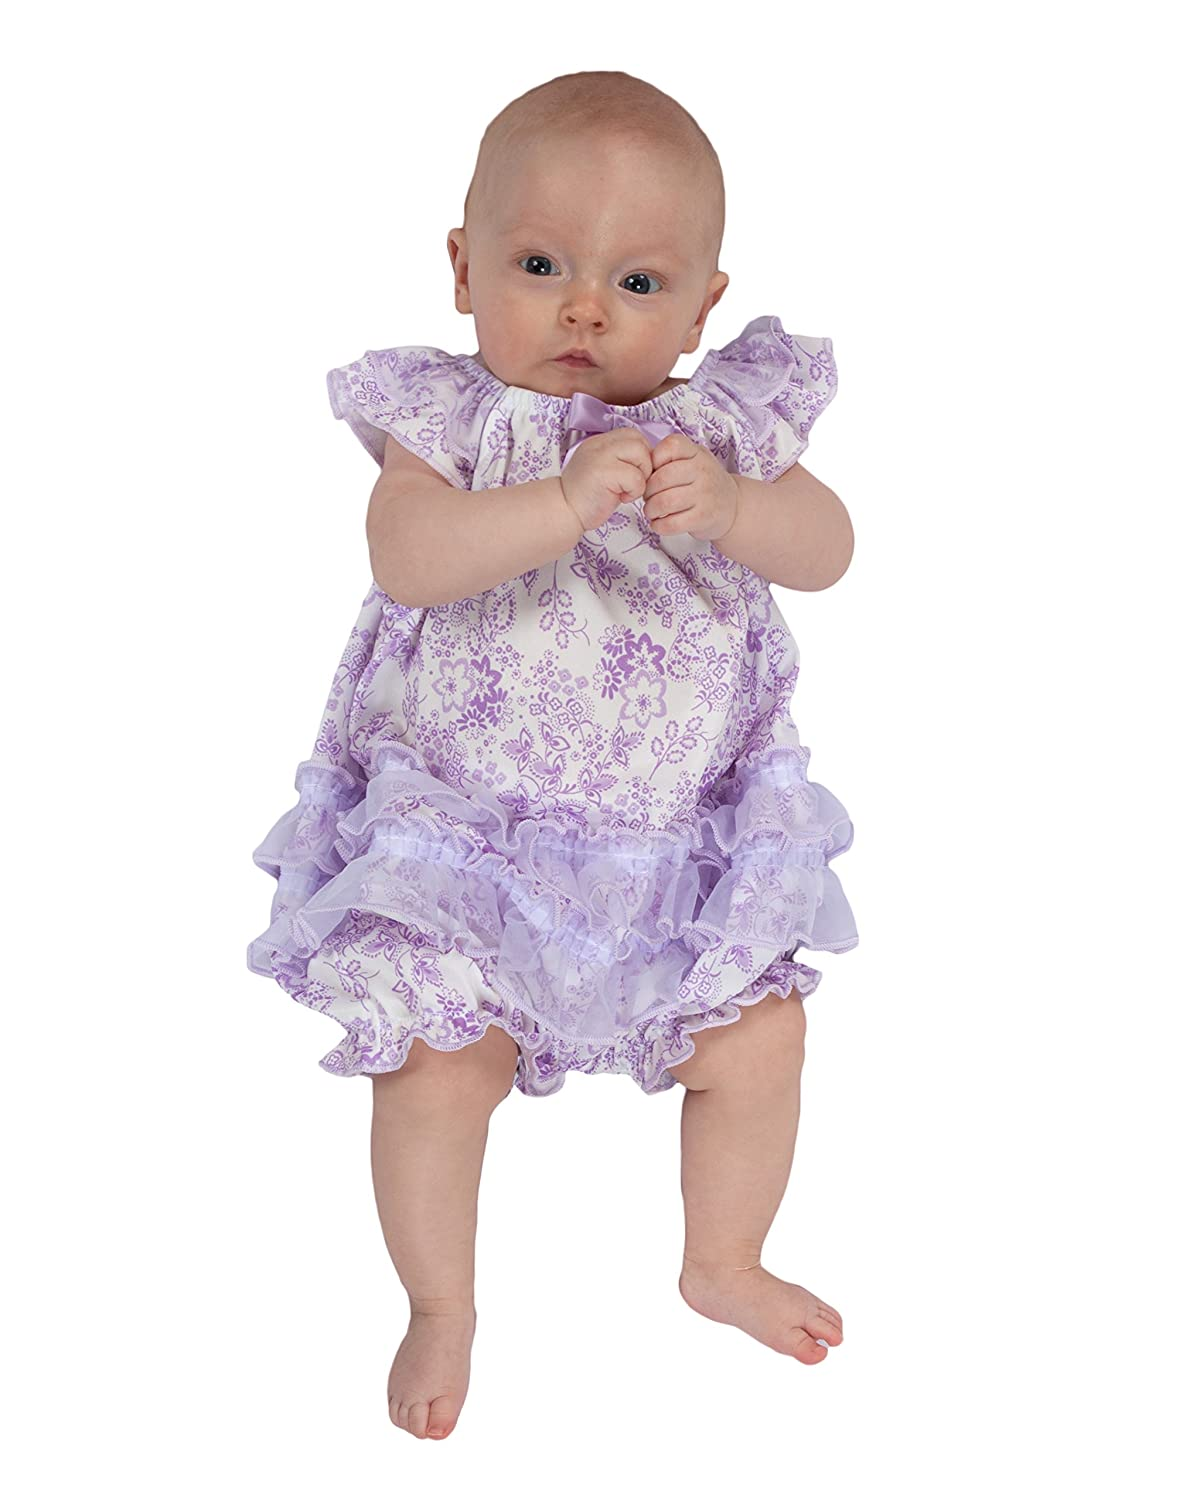 Laura Dare Baby Girls Lovely Lavender Floral Frilly Romper